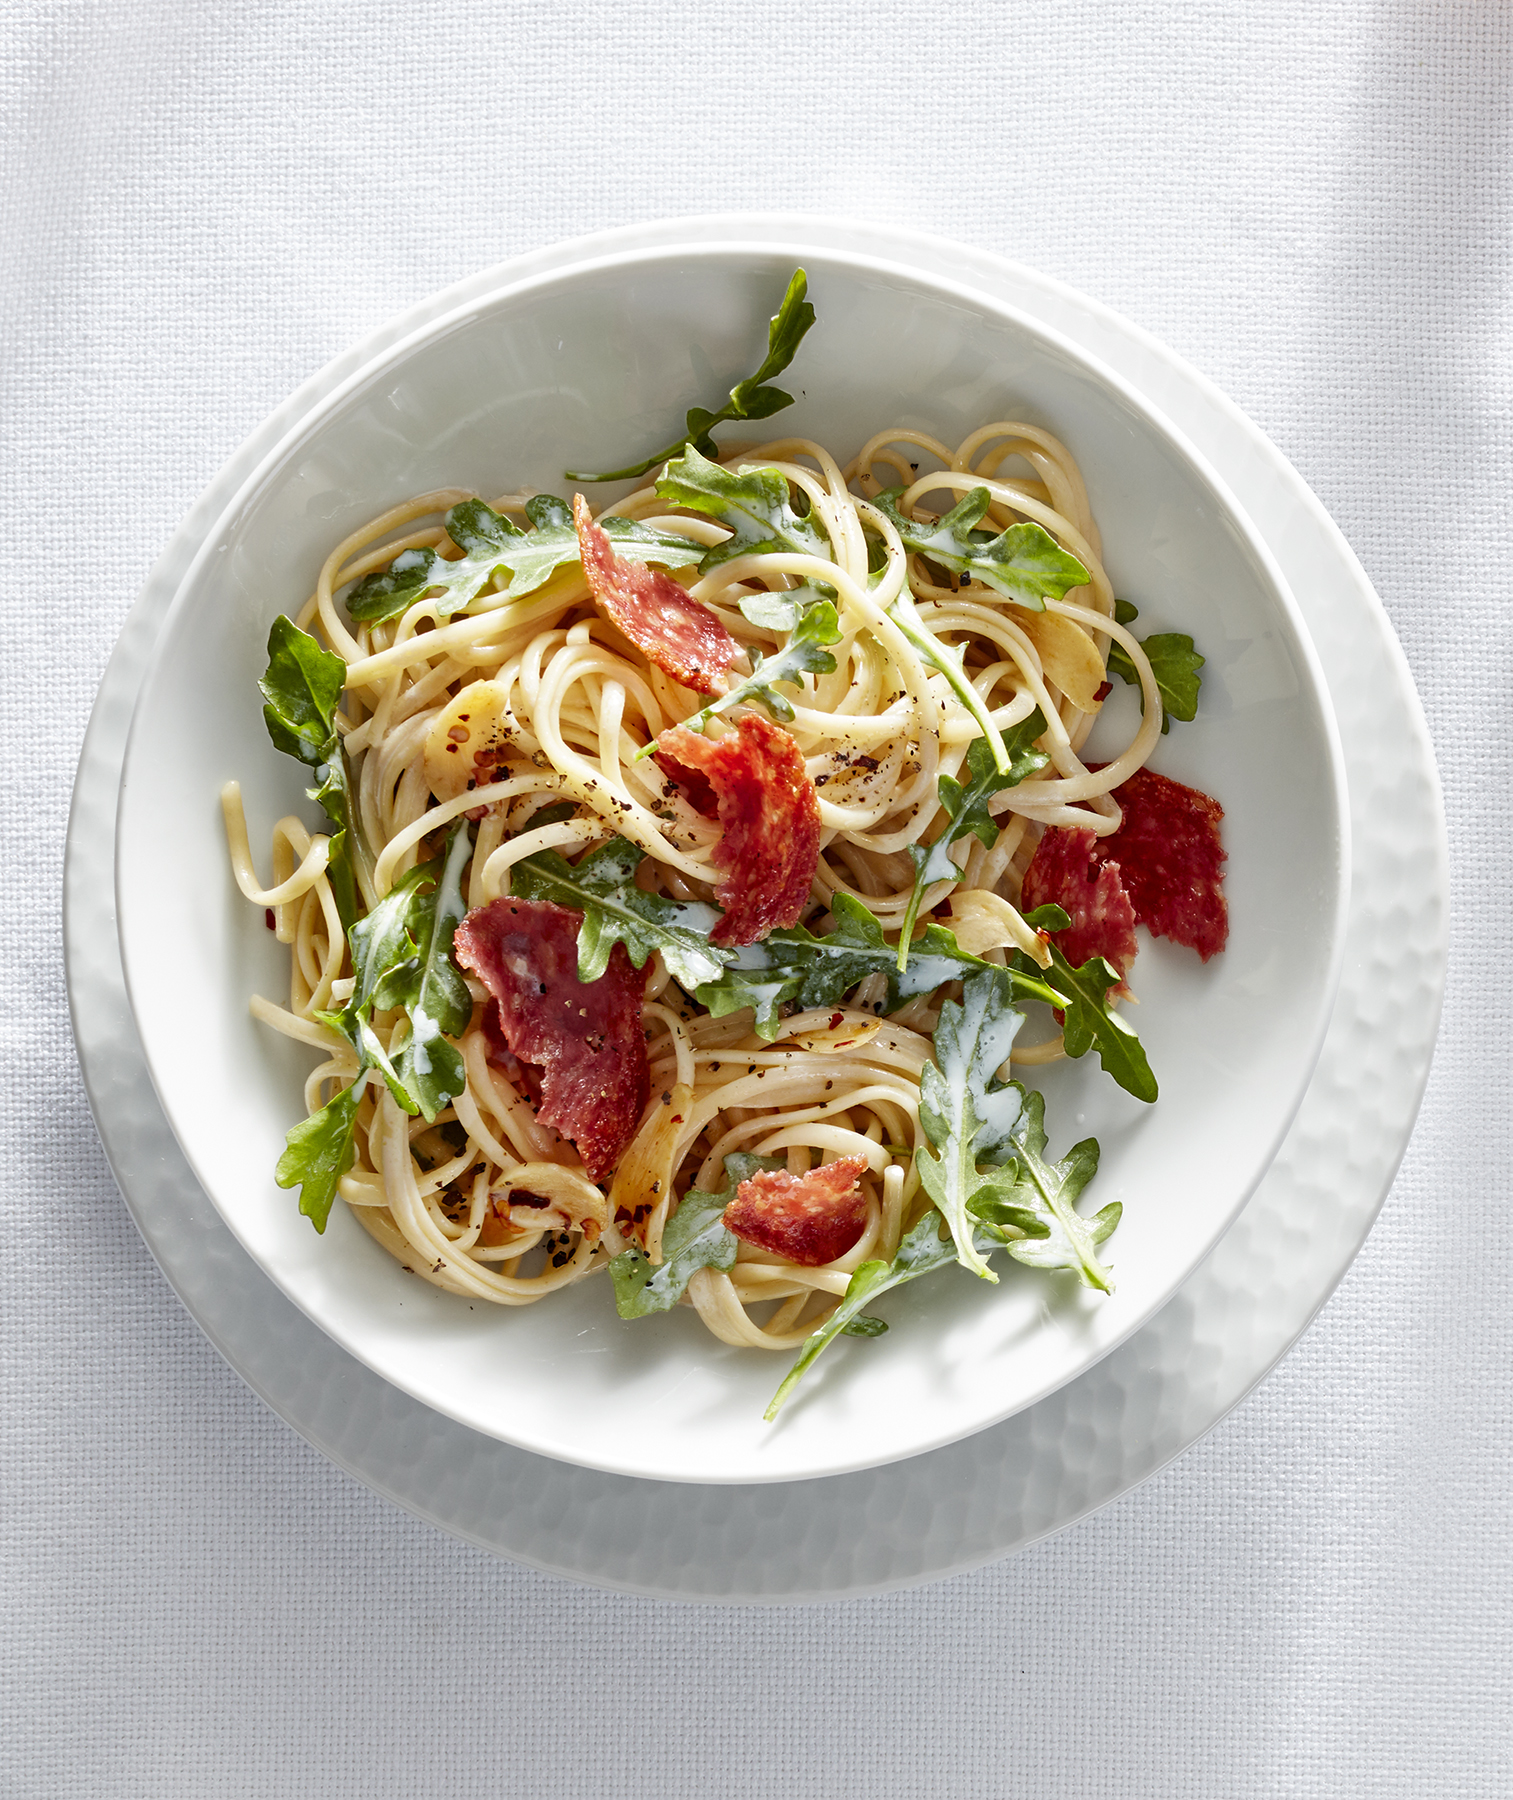 Linguine With Garlic, Soppressata, and Wilted Arugula